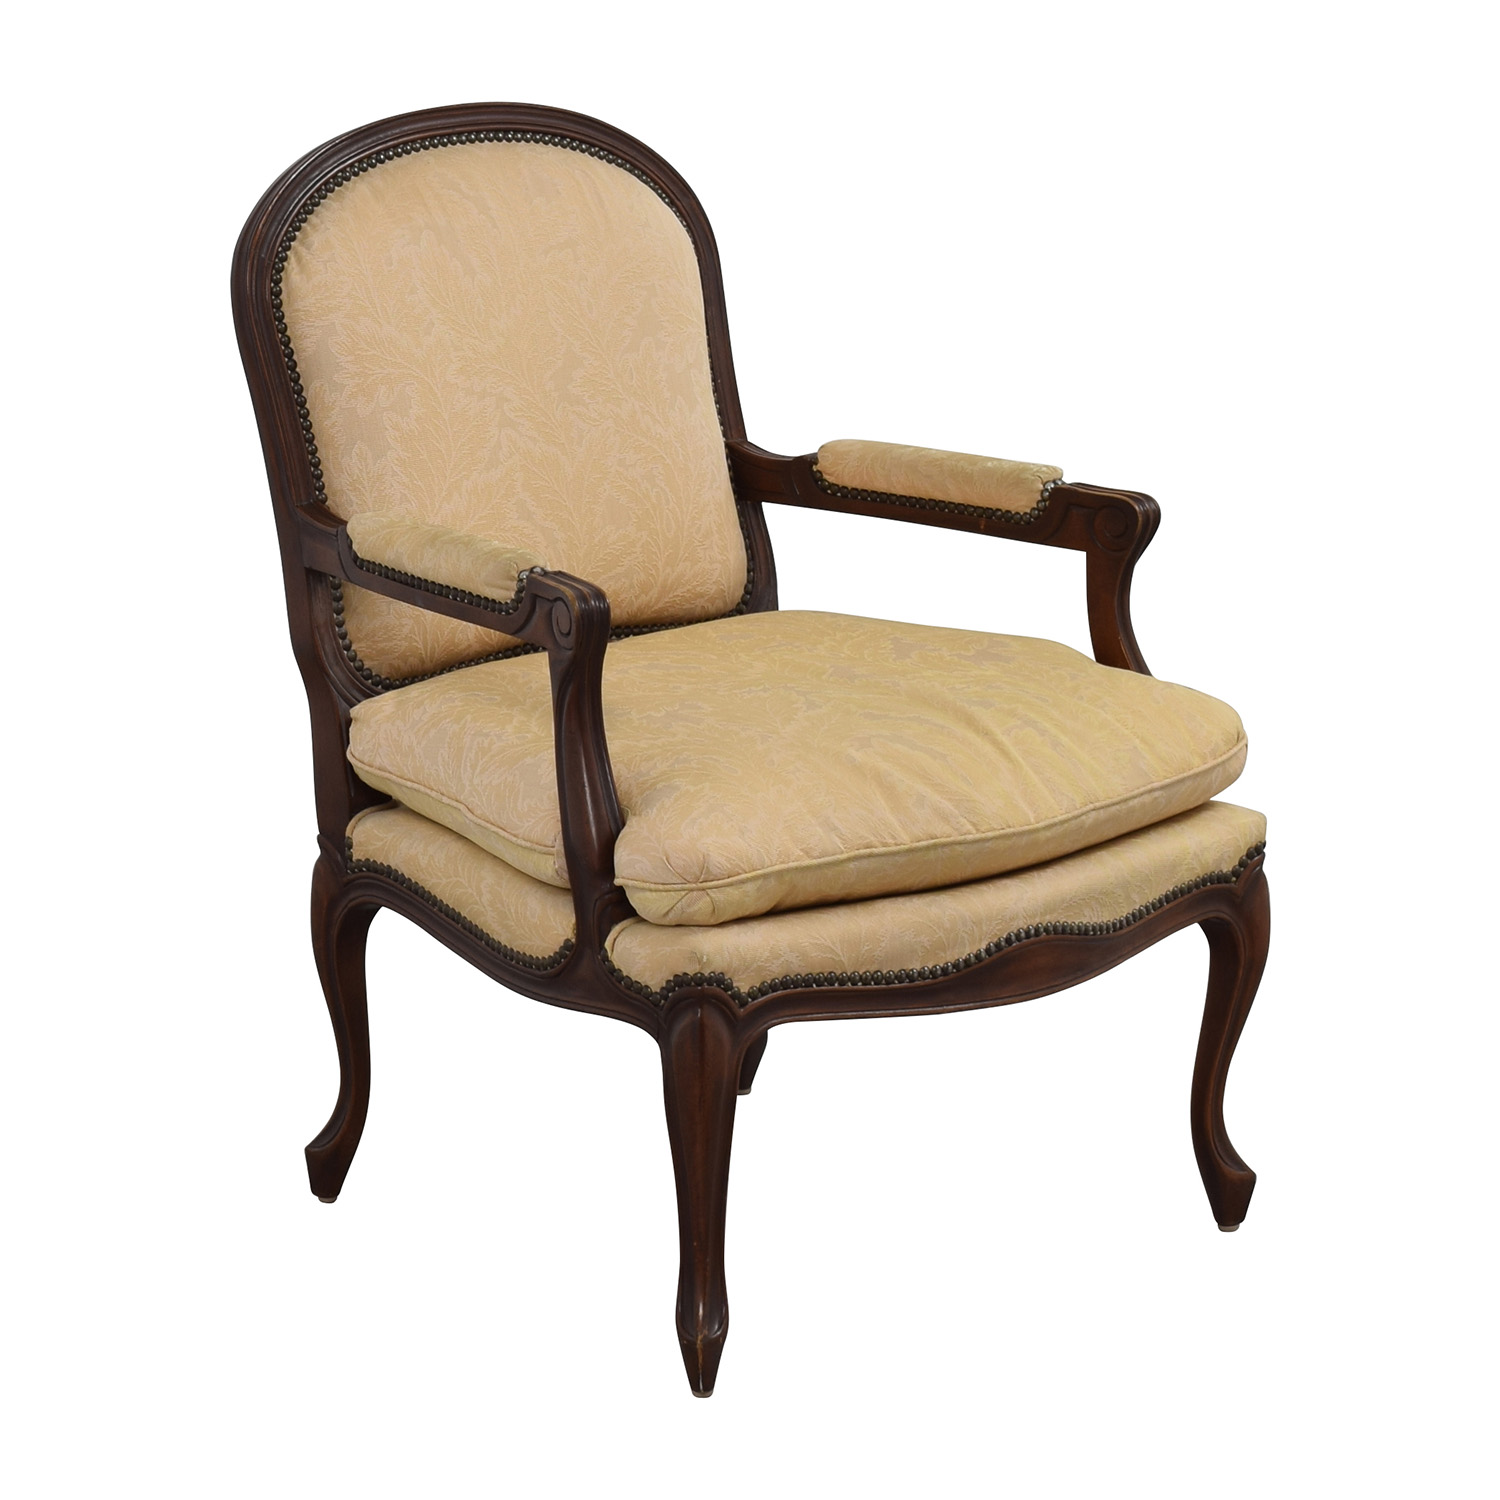 Accent Chairs Prices 75 Off Gold Floral Jacquard Upholstered Studded Accent